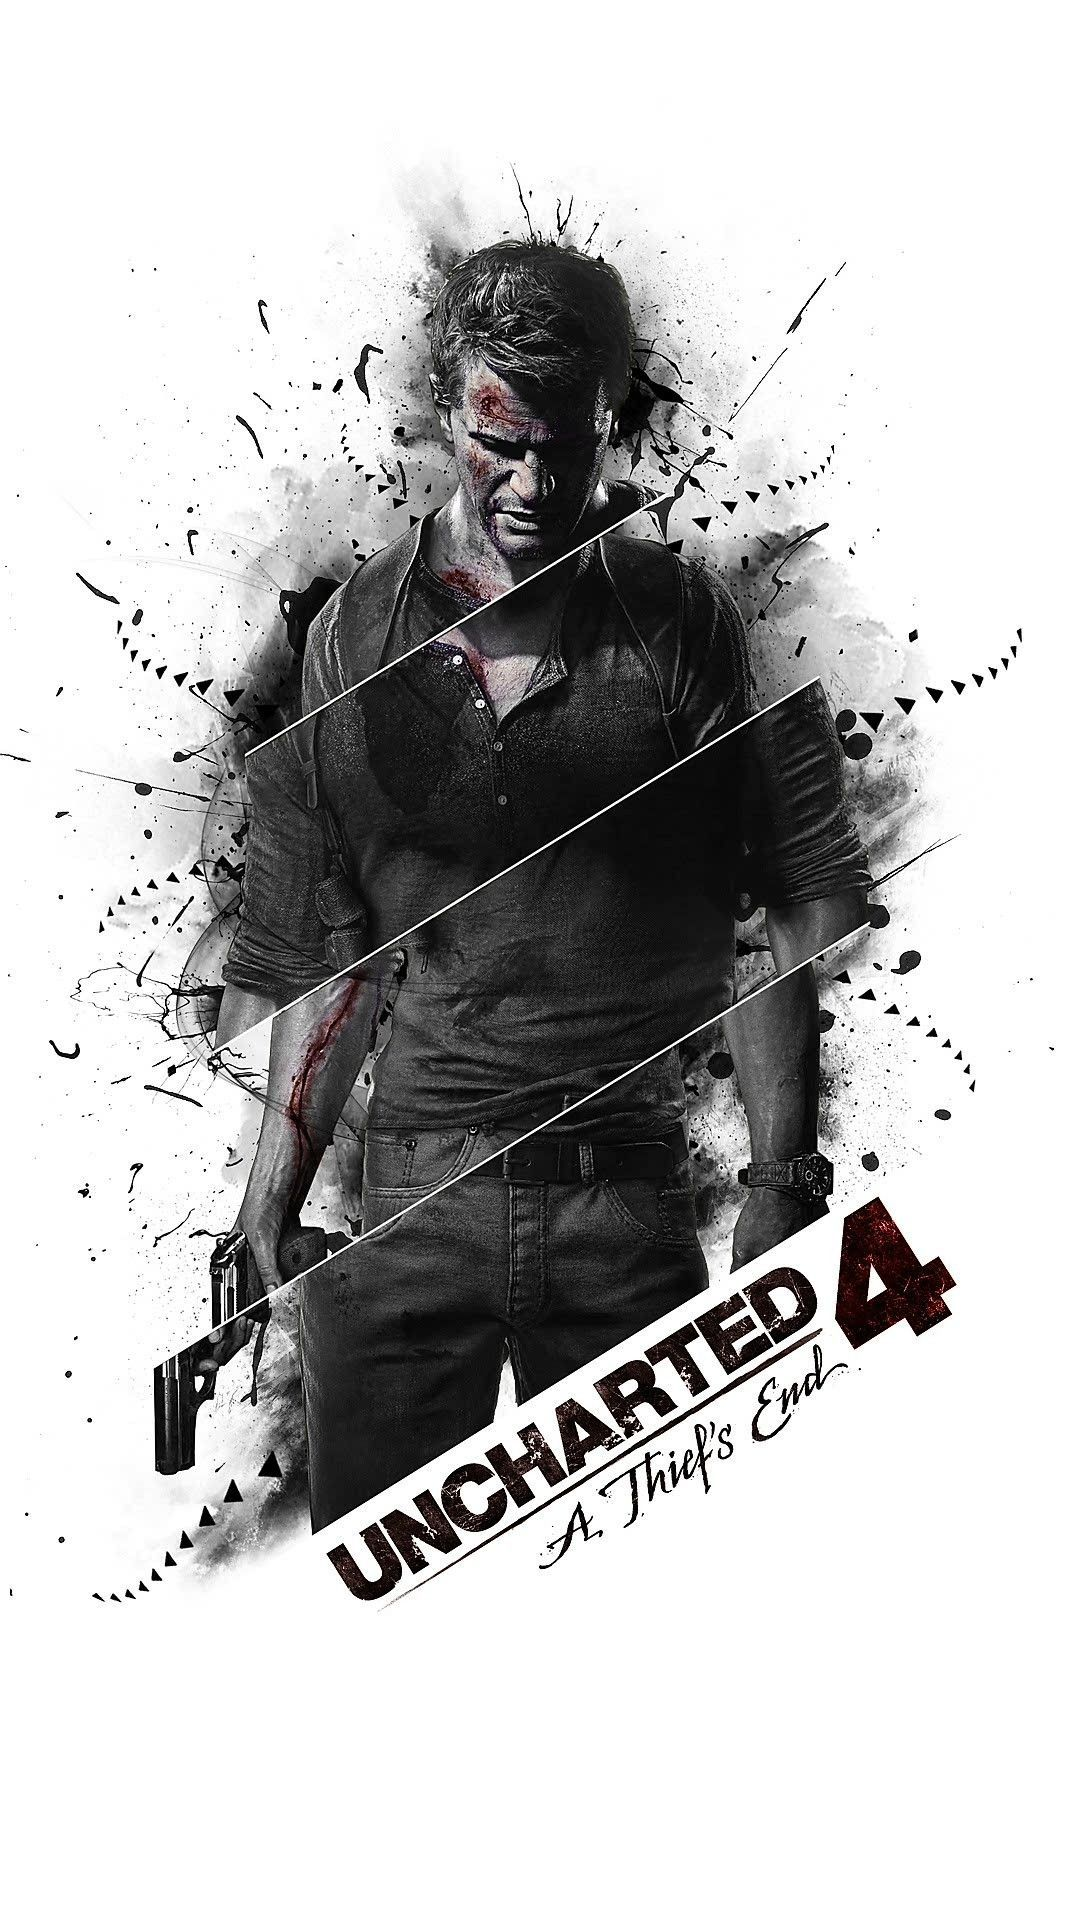 Uncharted 4 Wallpaper Hupages Download Iphone Wallpapers Jogos Ps4 Eletronic Arts Jogos De Video Game